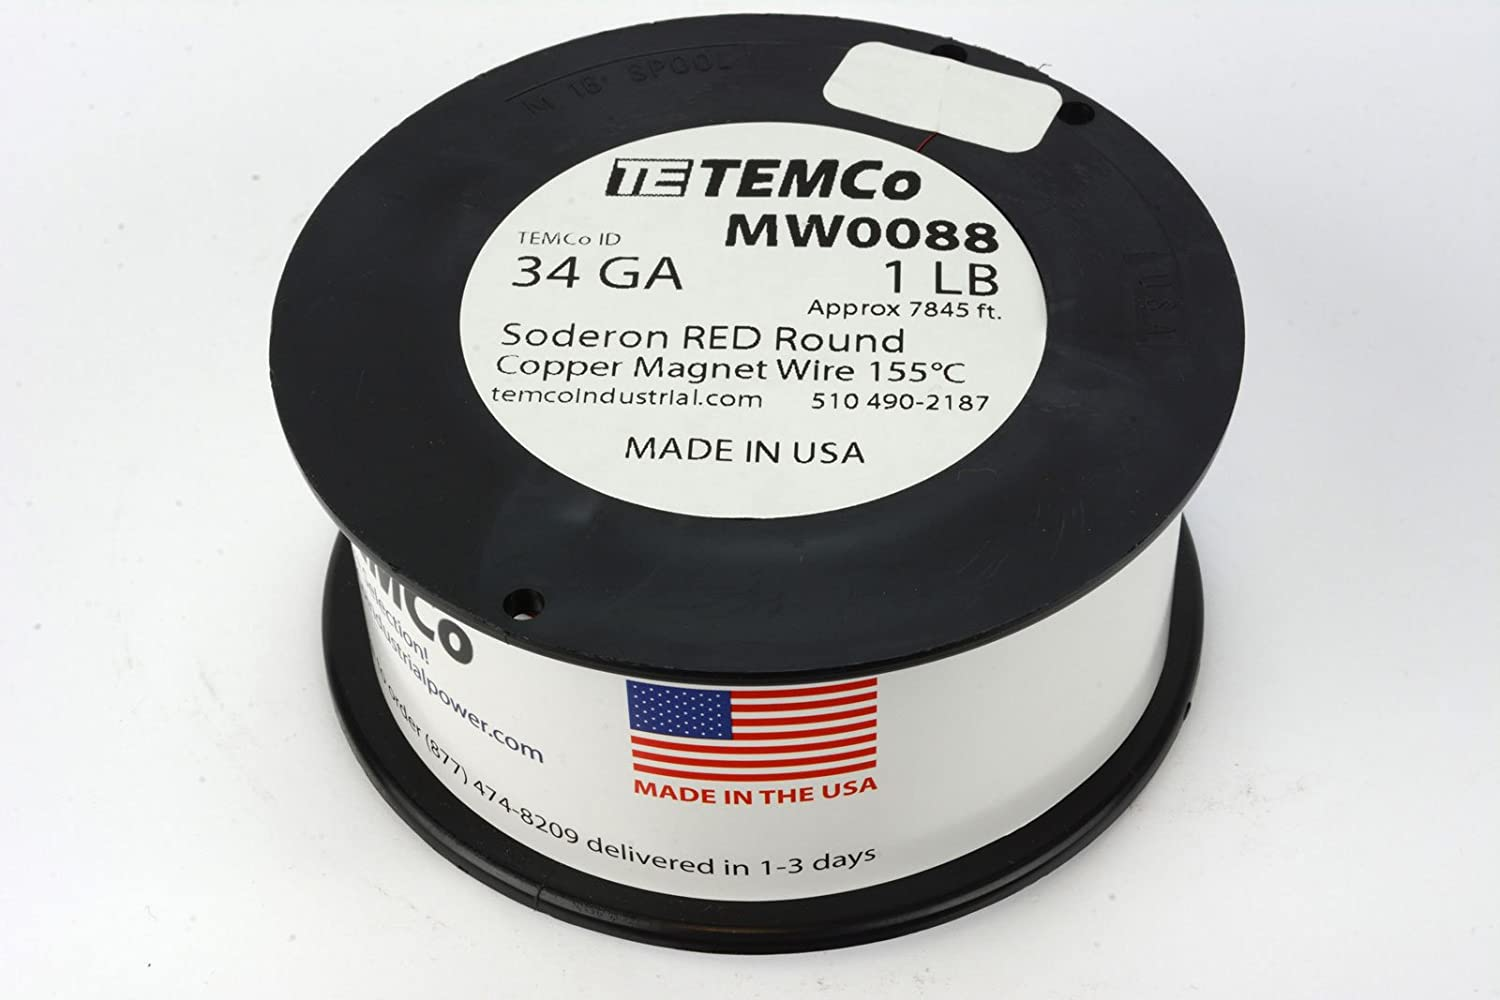 Amazon.com: TEMCo 34 AWG Copper Magnet Wire - 1 lb 7845 ft 155°C ...